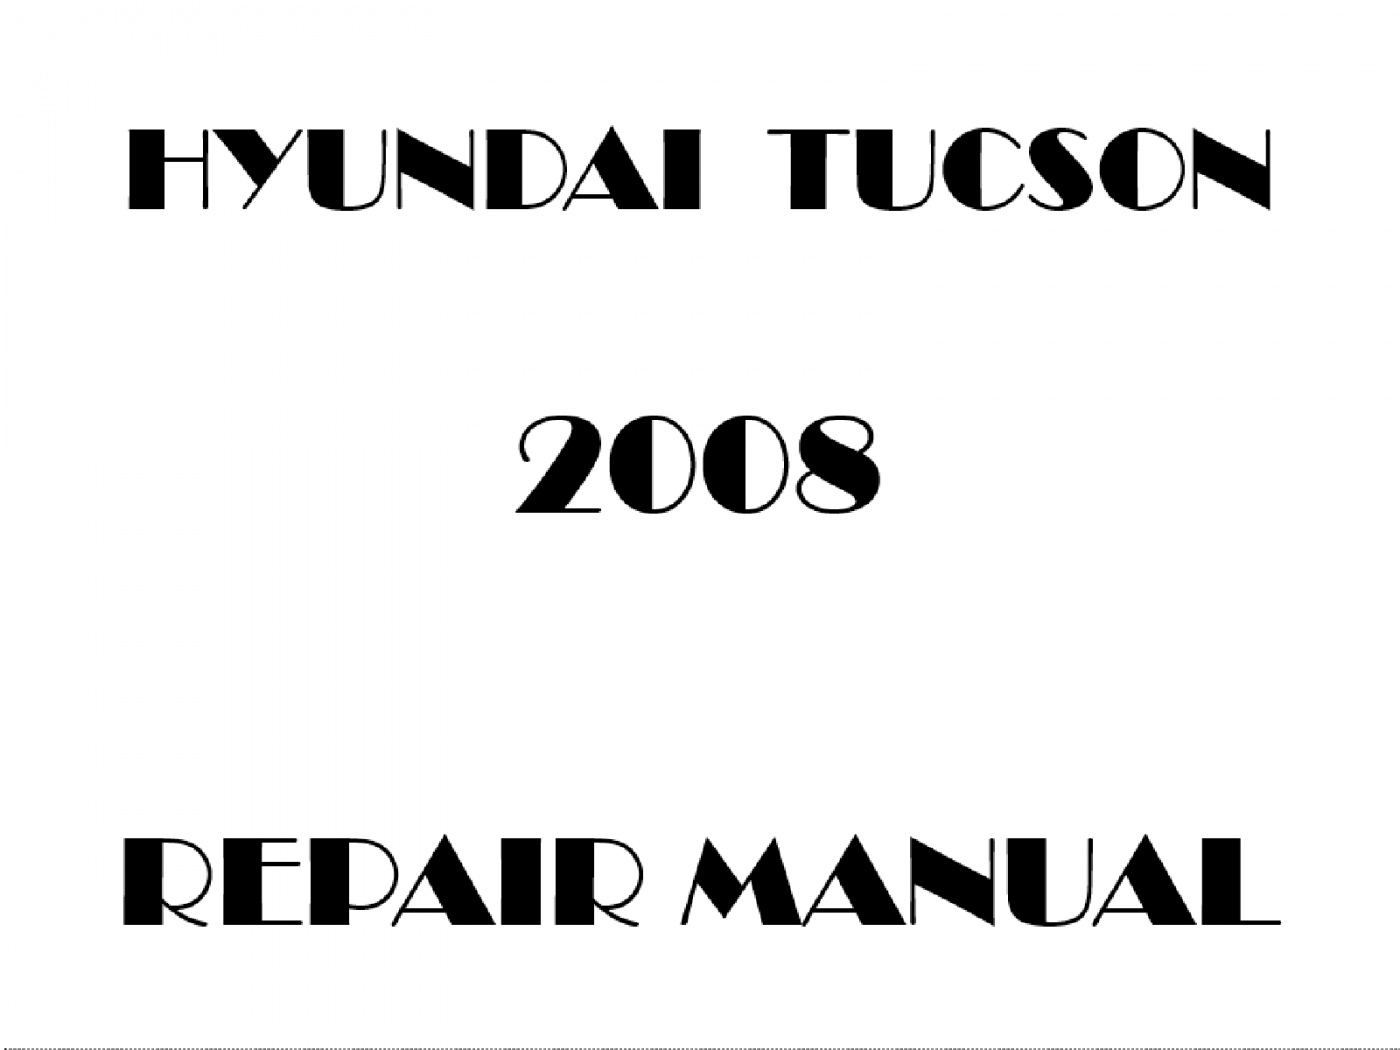 2008 Hyundai Tucson repair manual